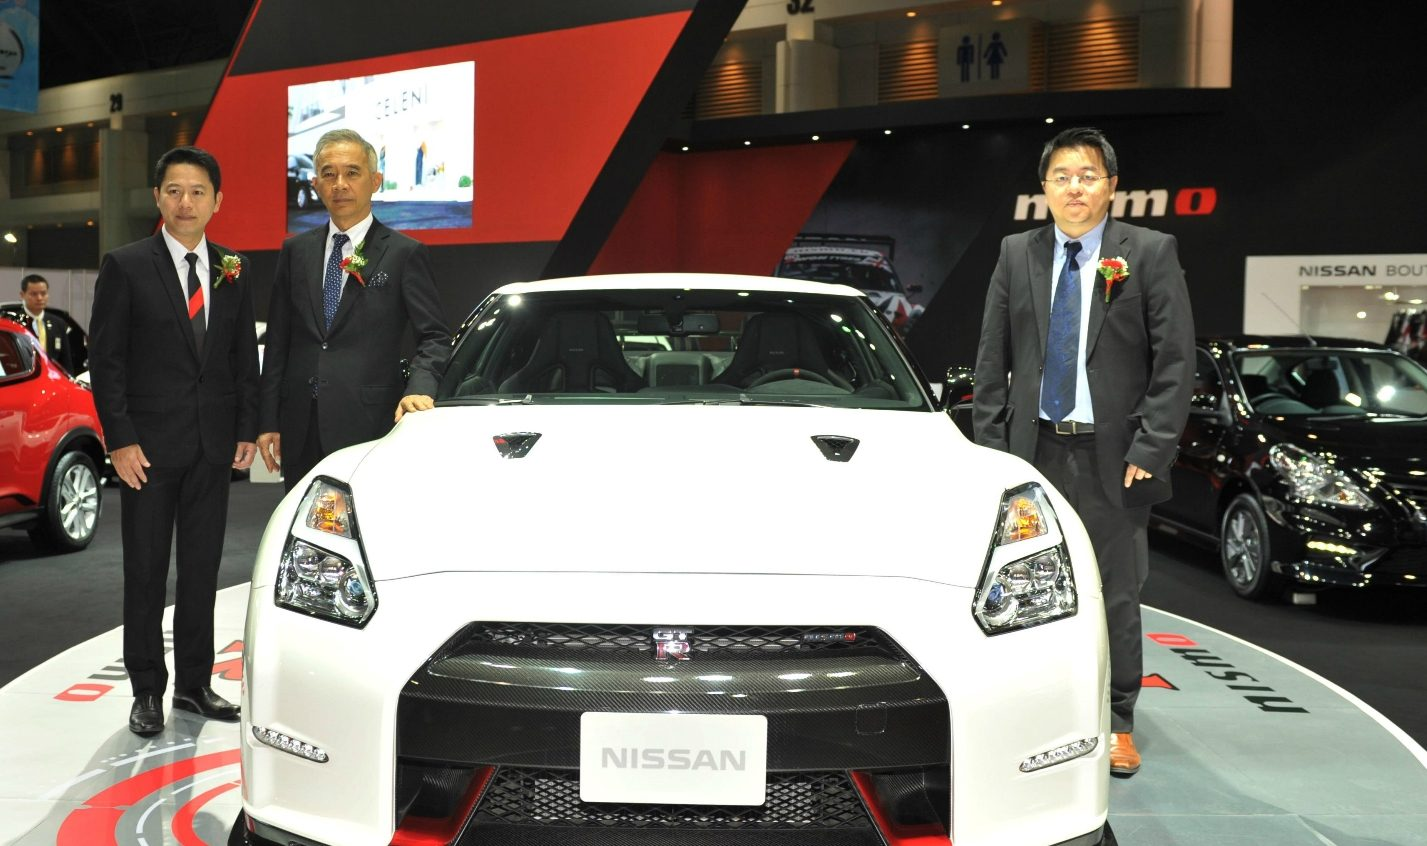 Nissan Joins Bangkok International Auto Salon 2016